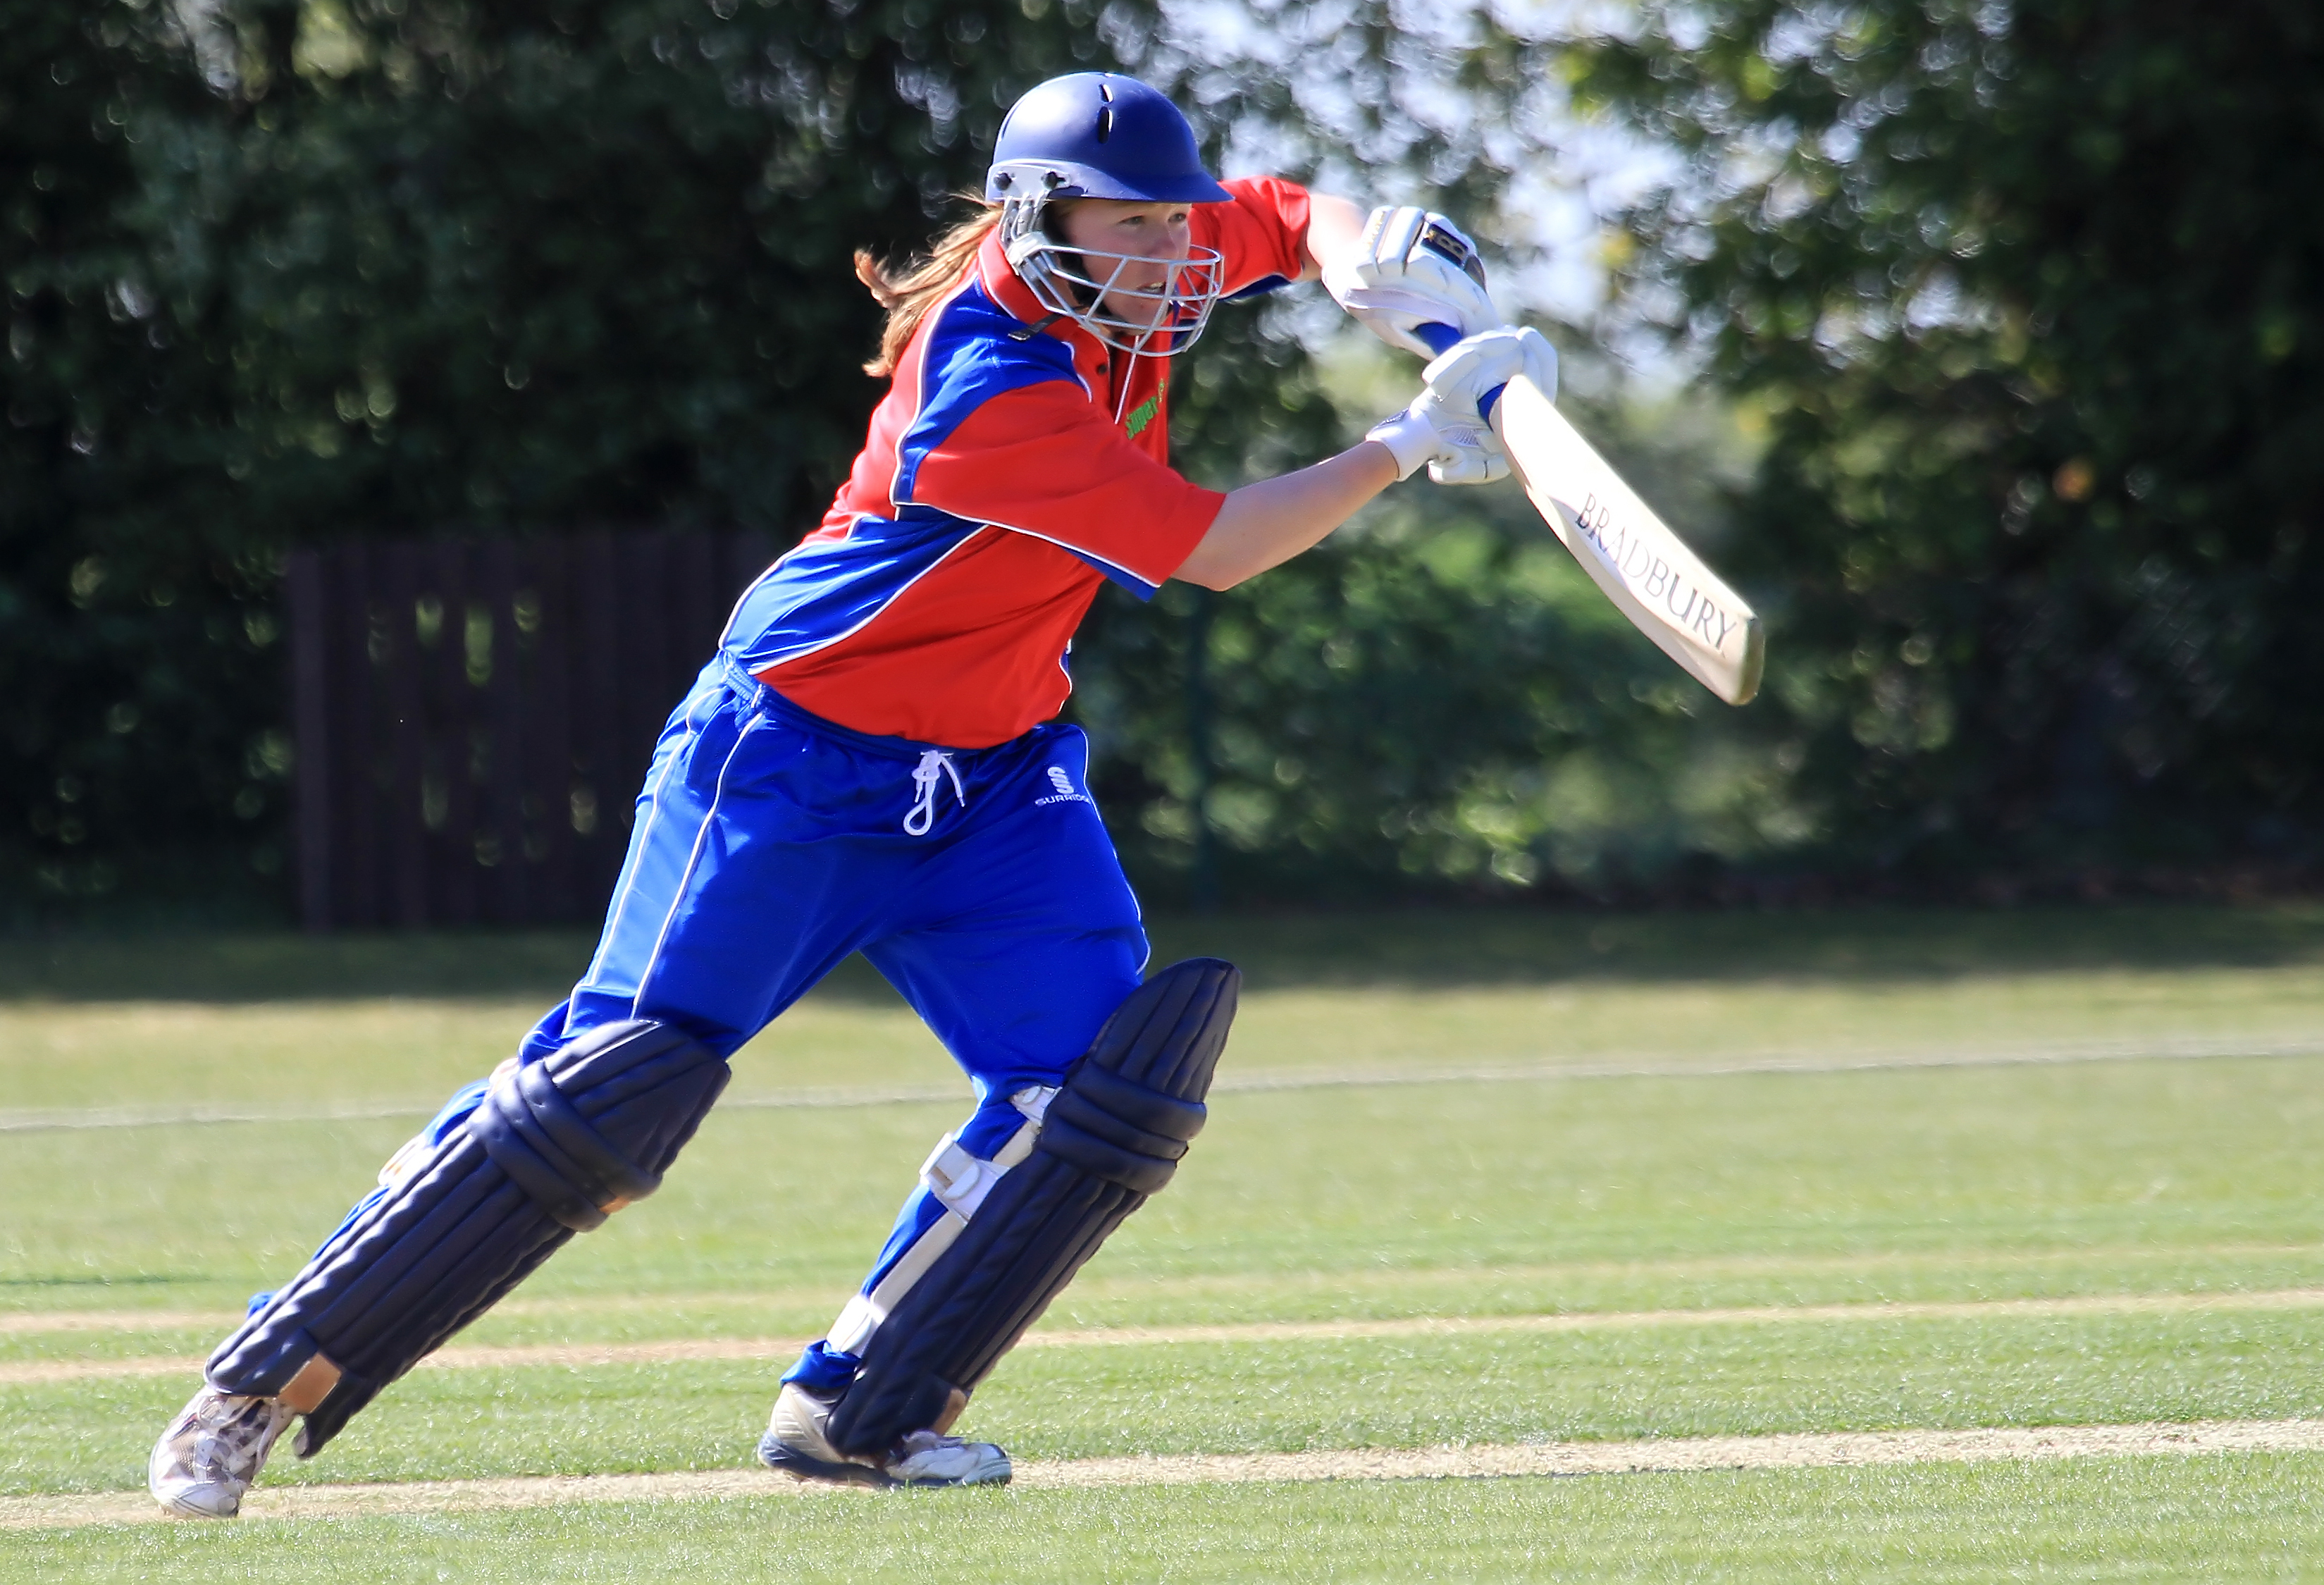 PTI Consulting announce Cricket Bat sponsorship with World Cup winner Anya Shrubsole MBE